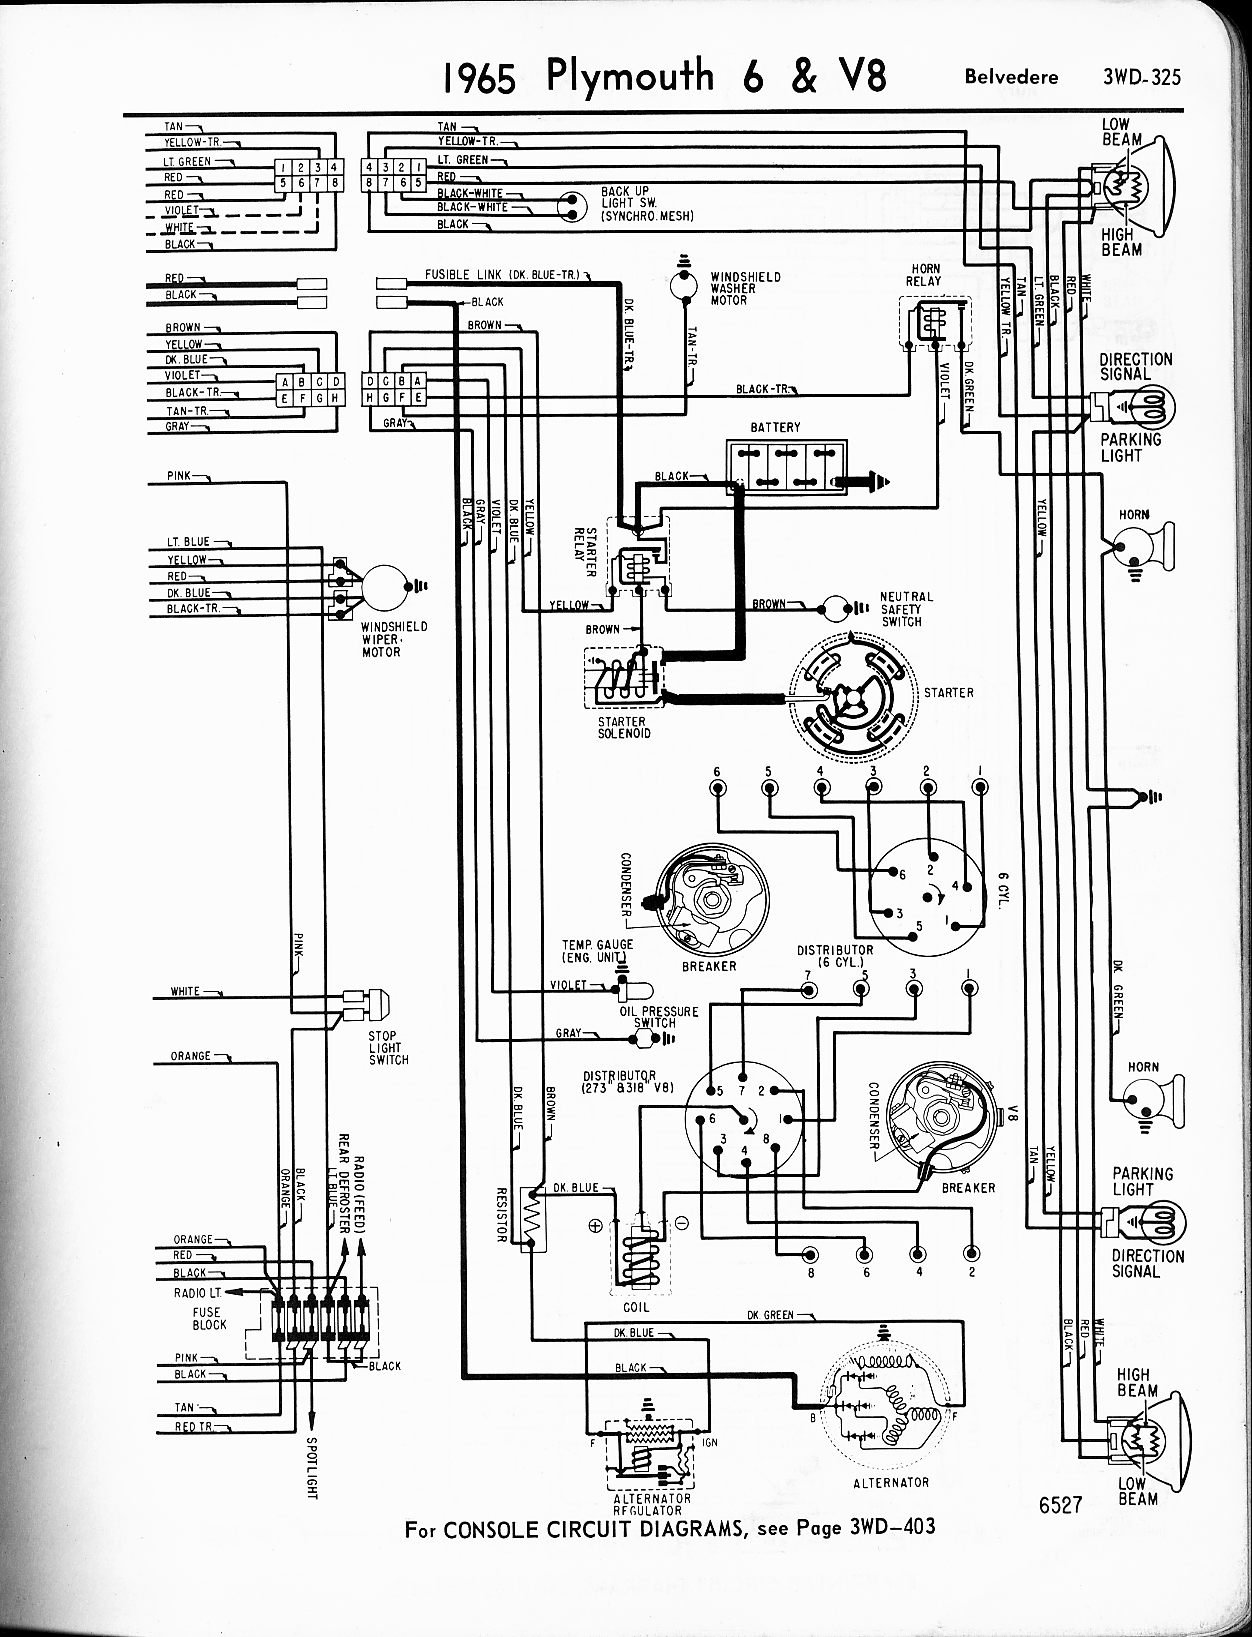 What is the wireing schematic,for the wiper switch and ...